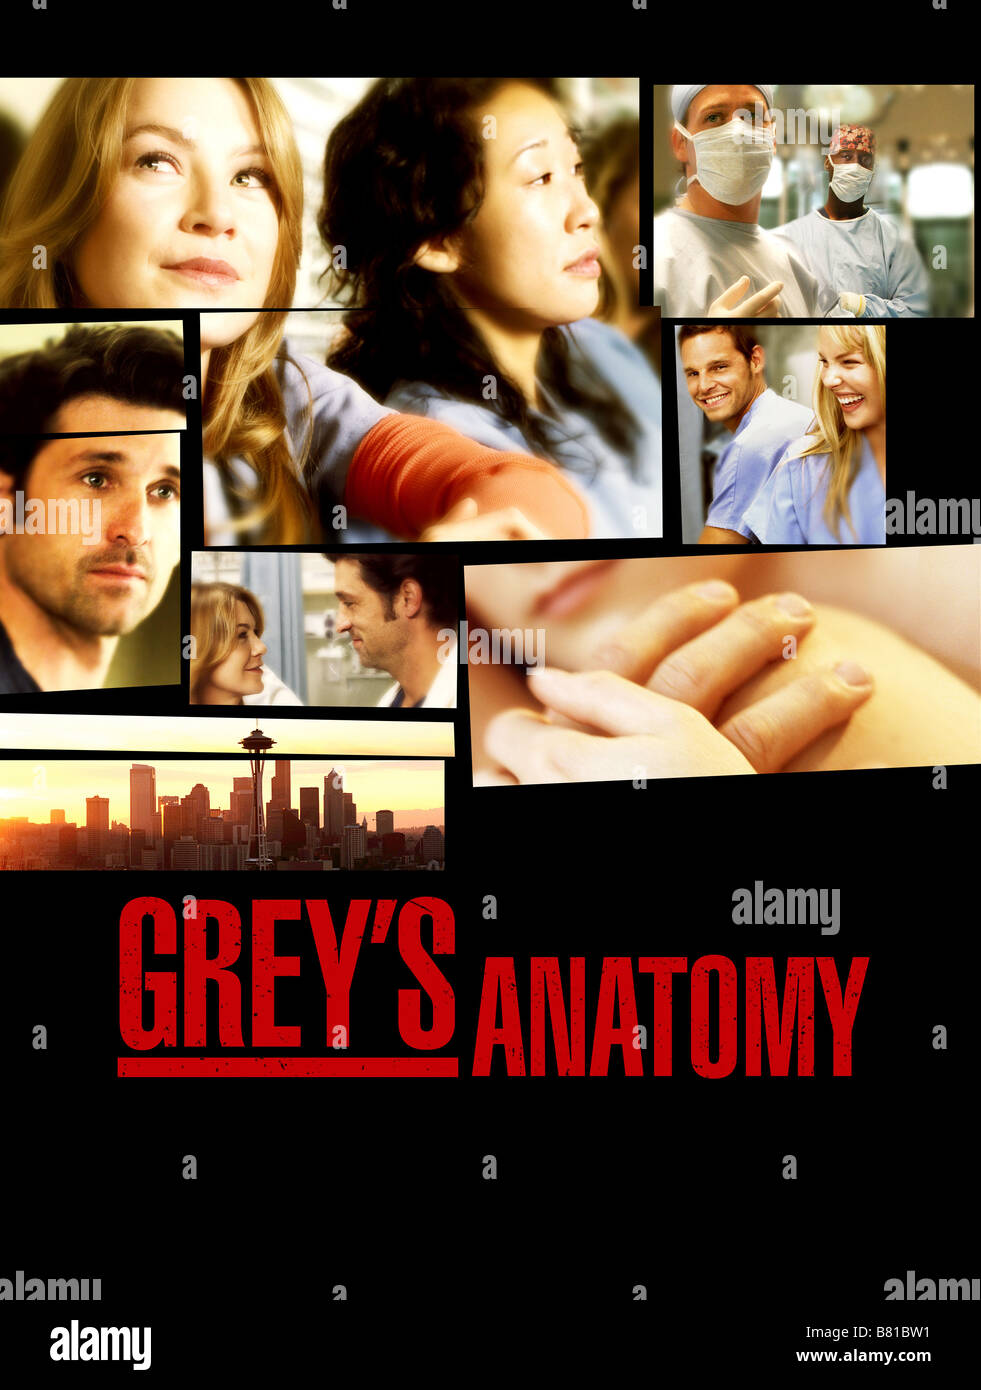 Greys Anatomy Tv Series 2005 Usa 2005 Season 1 Created By